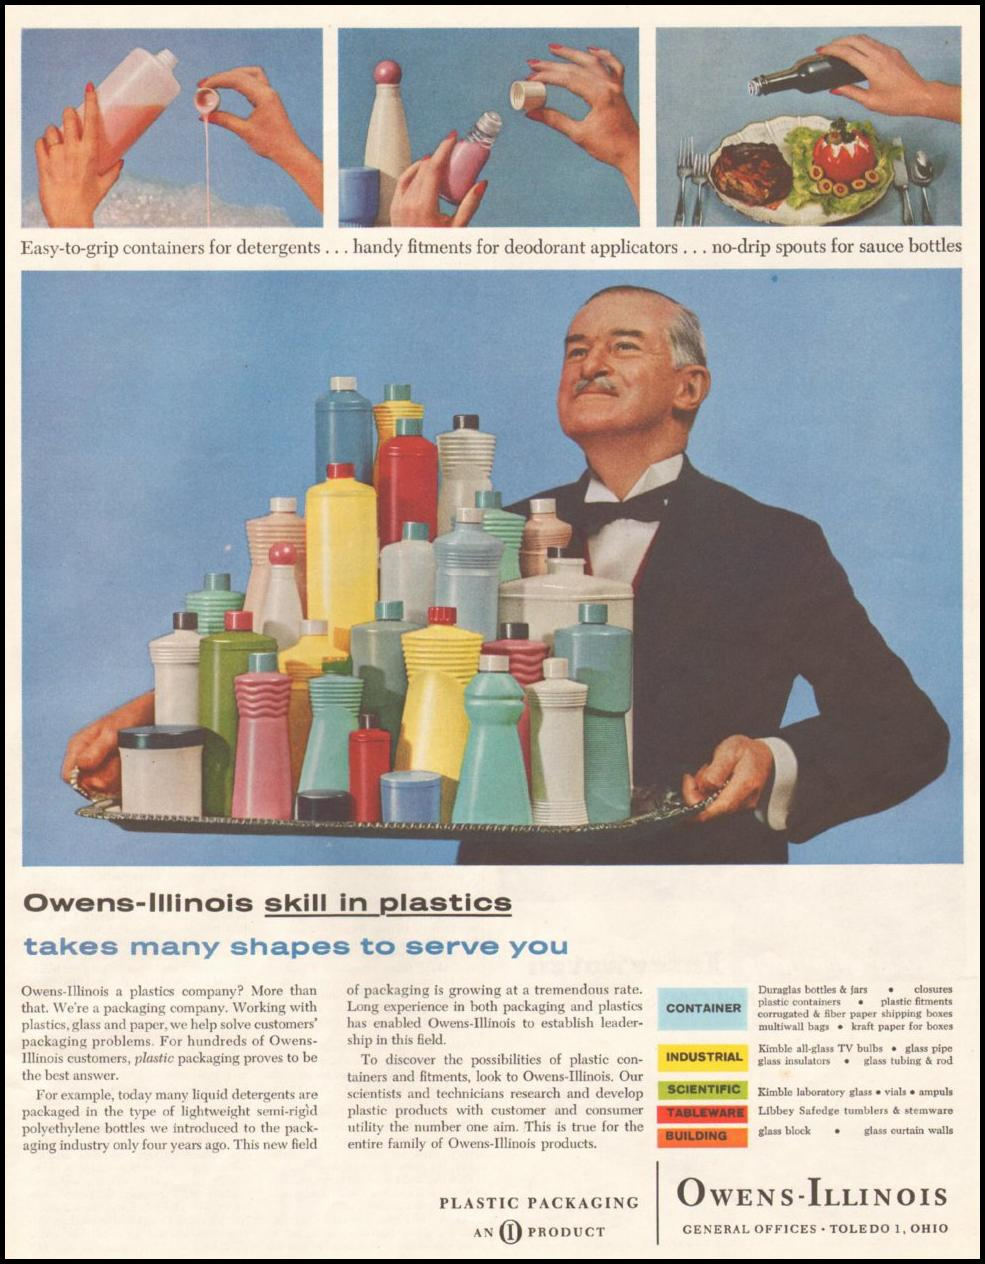 OWENS-ILLINOIS PLASTIC PACKAGING SATURDAY EVENING POST 06/11/1960 p. 109